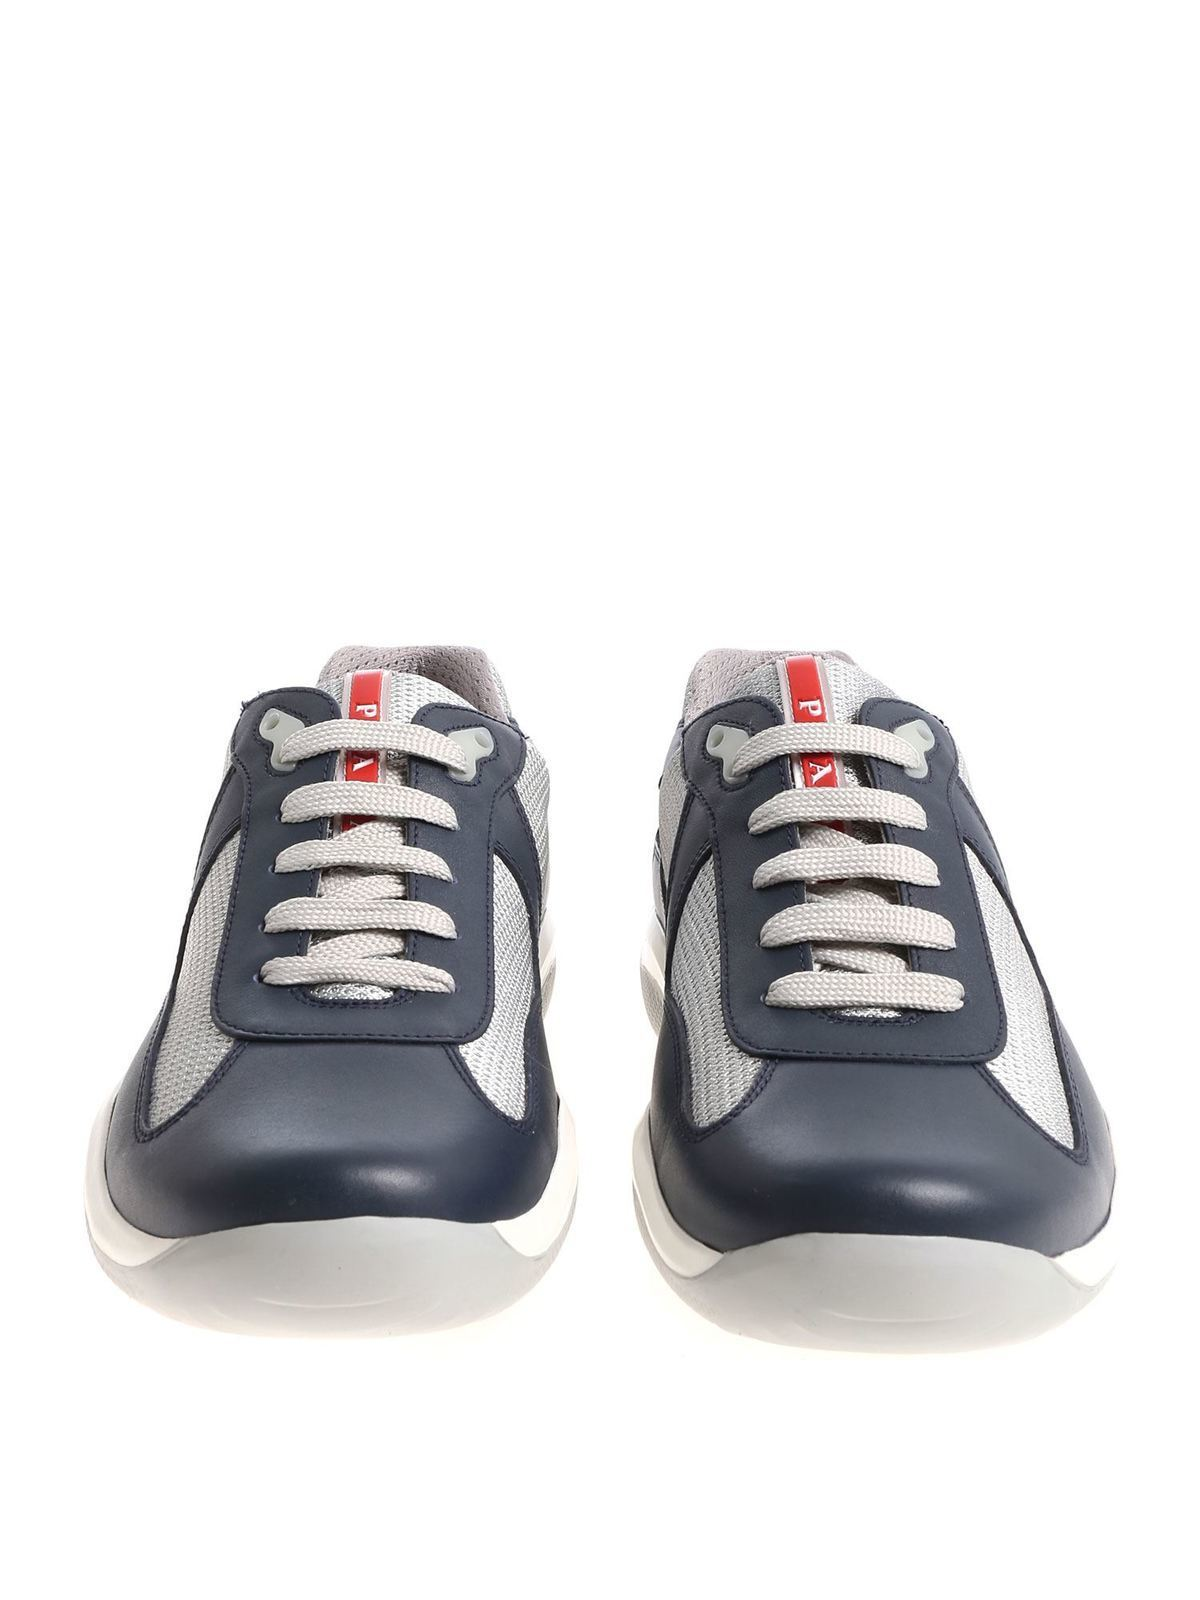 Prada Sport - Blue and silver leather